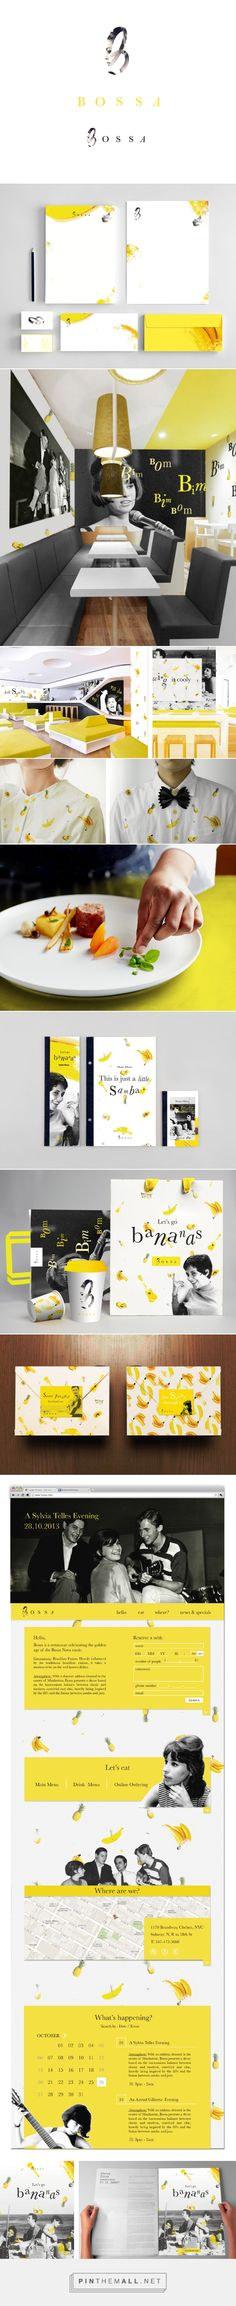 Bossa on Behance curated by Packaging Diva PD. Let's go bananas for the Bossa Nova packaging created via https://www.behance.net/gallery/Bossa/11202639